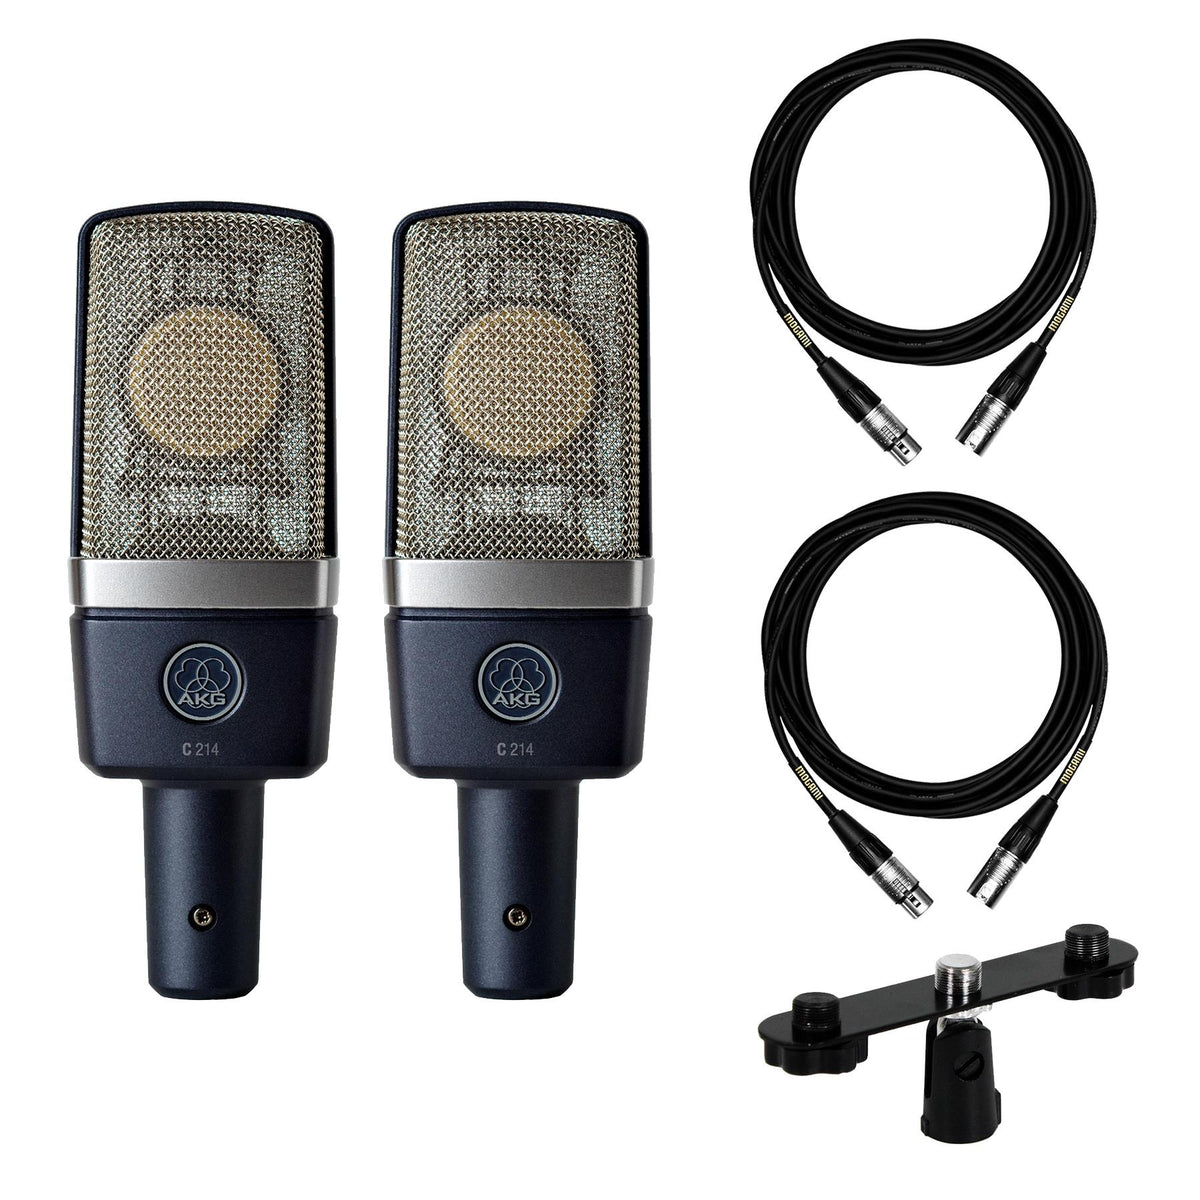 AKG C214 Microphone Stereo Pair Bundle with Stereo Bar & 2 Premium 15-foot XLR Mogami Cables